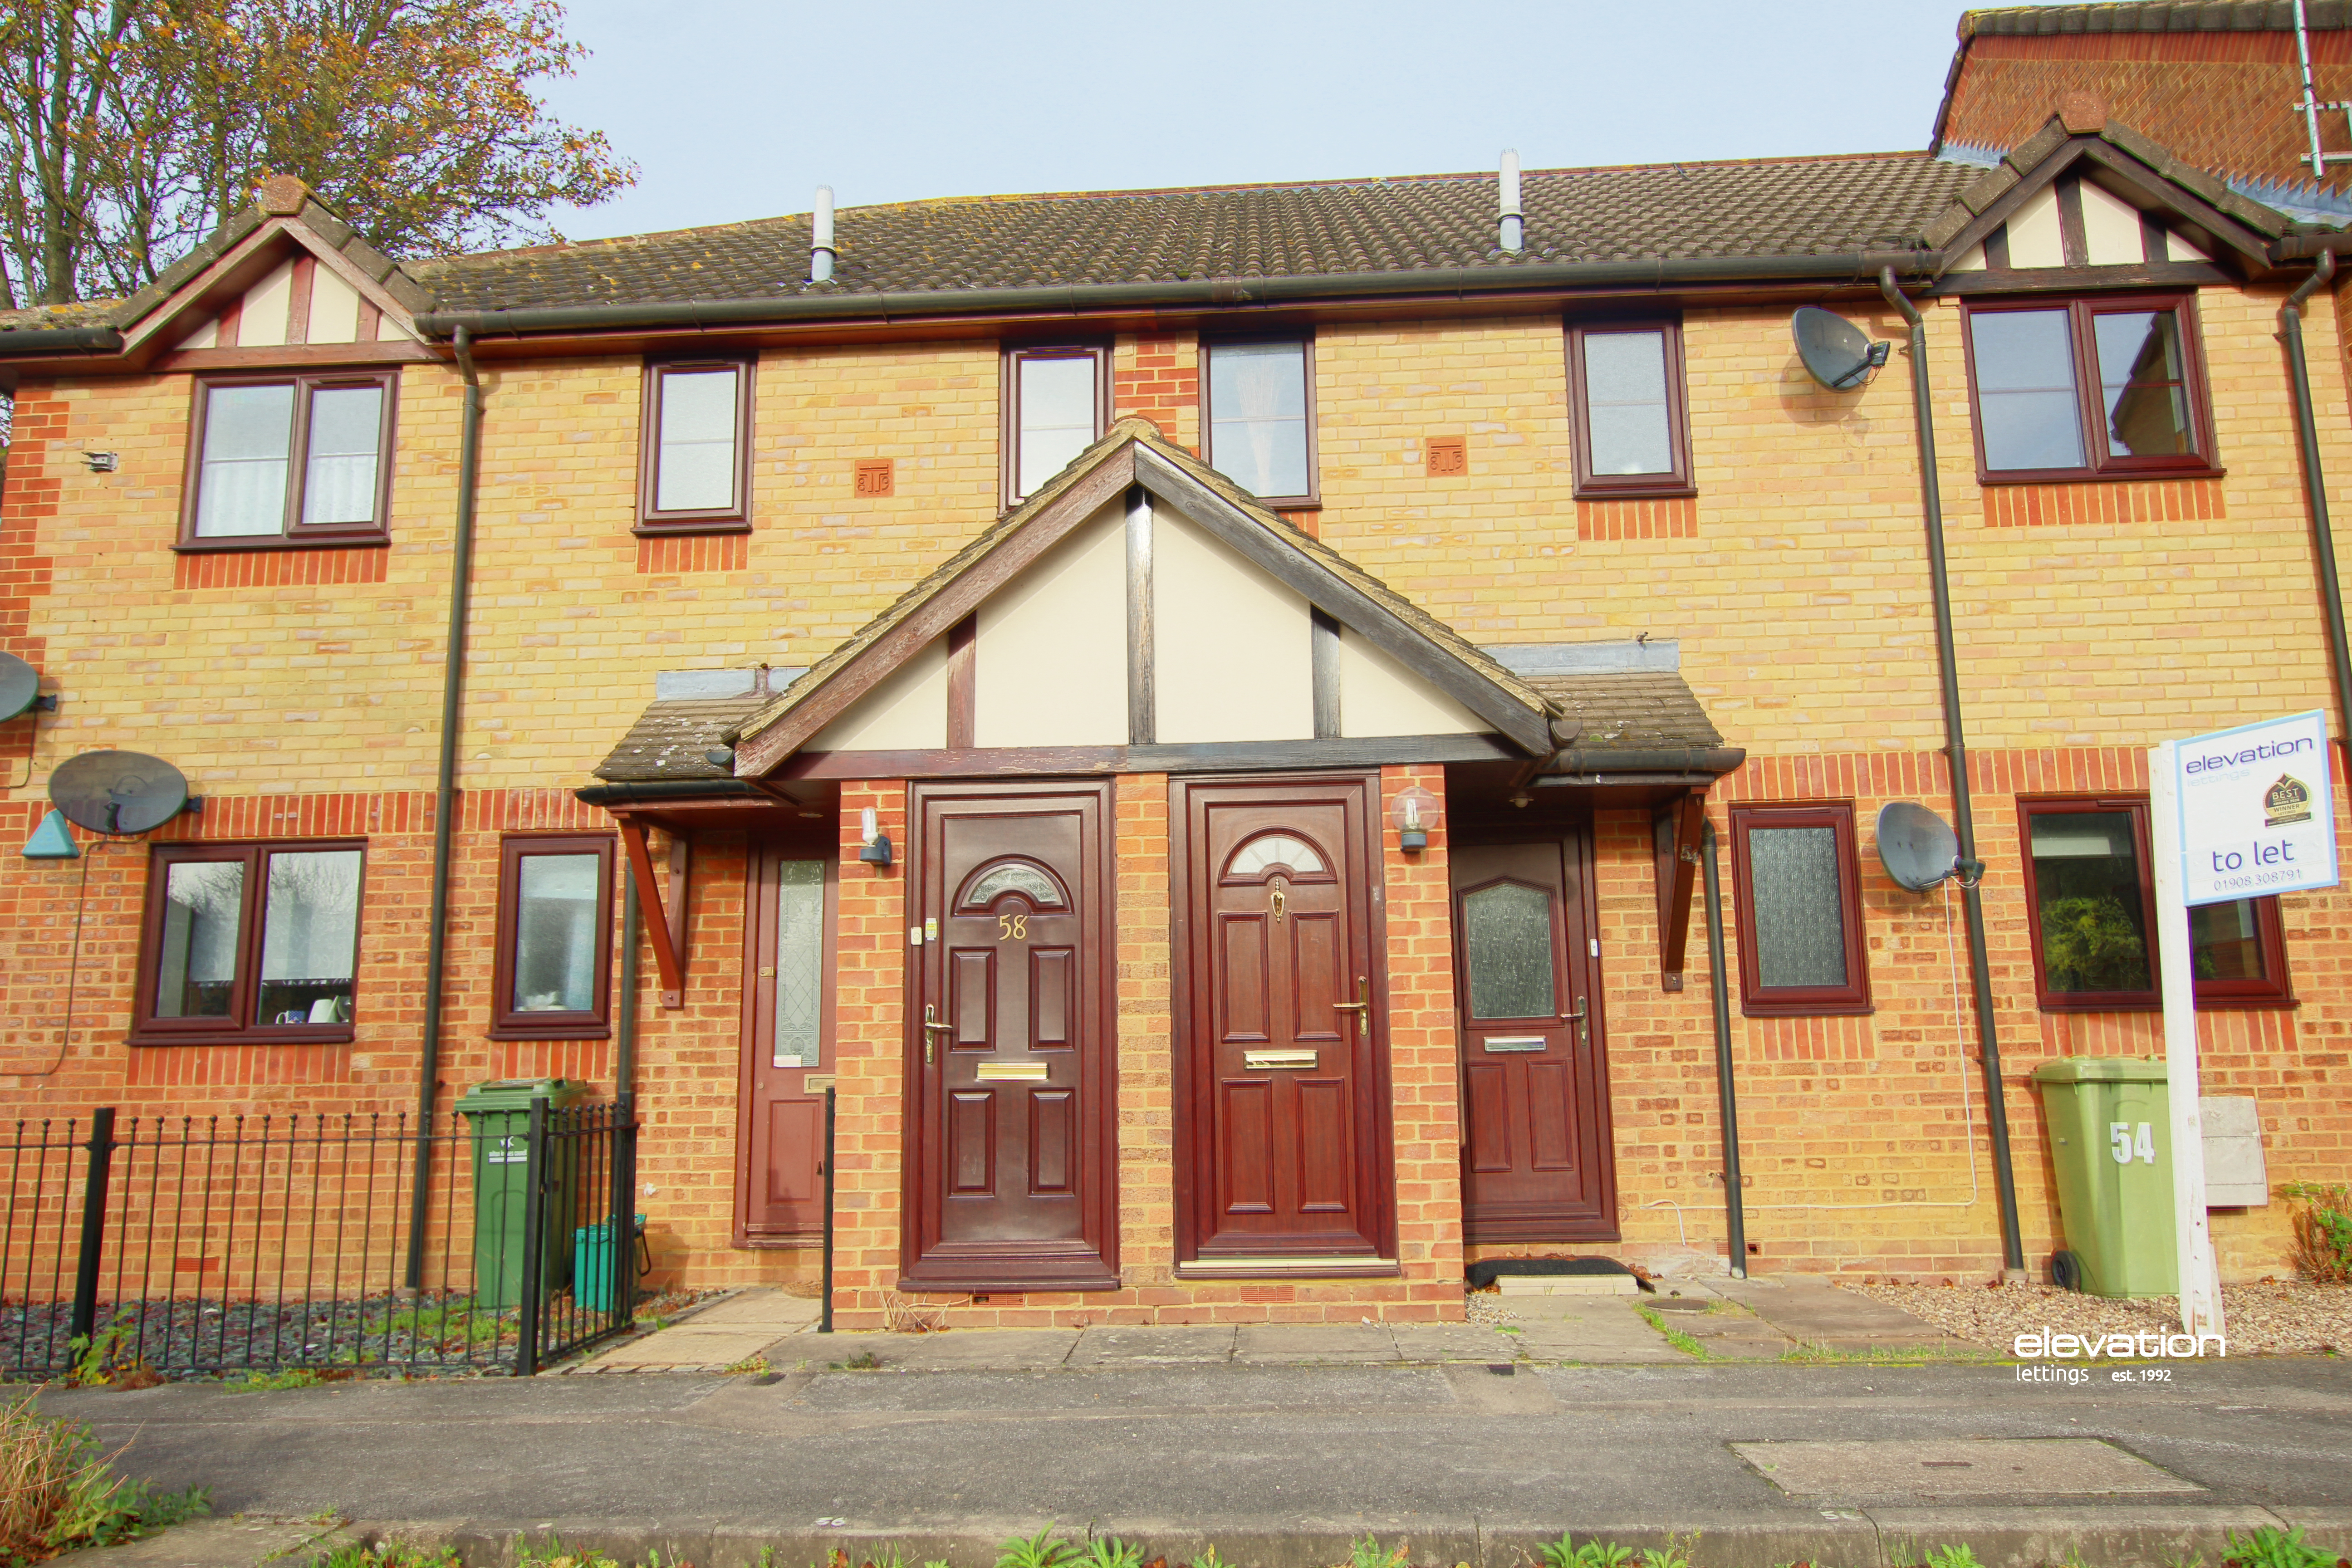 Pennycress Way, Newport Pagnell, Buckinghamshire Image